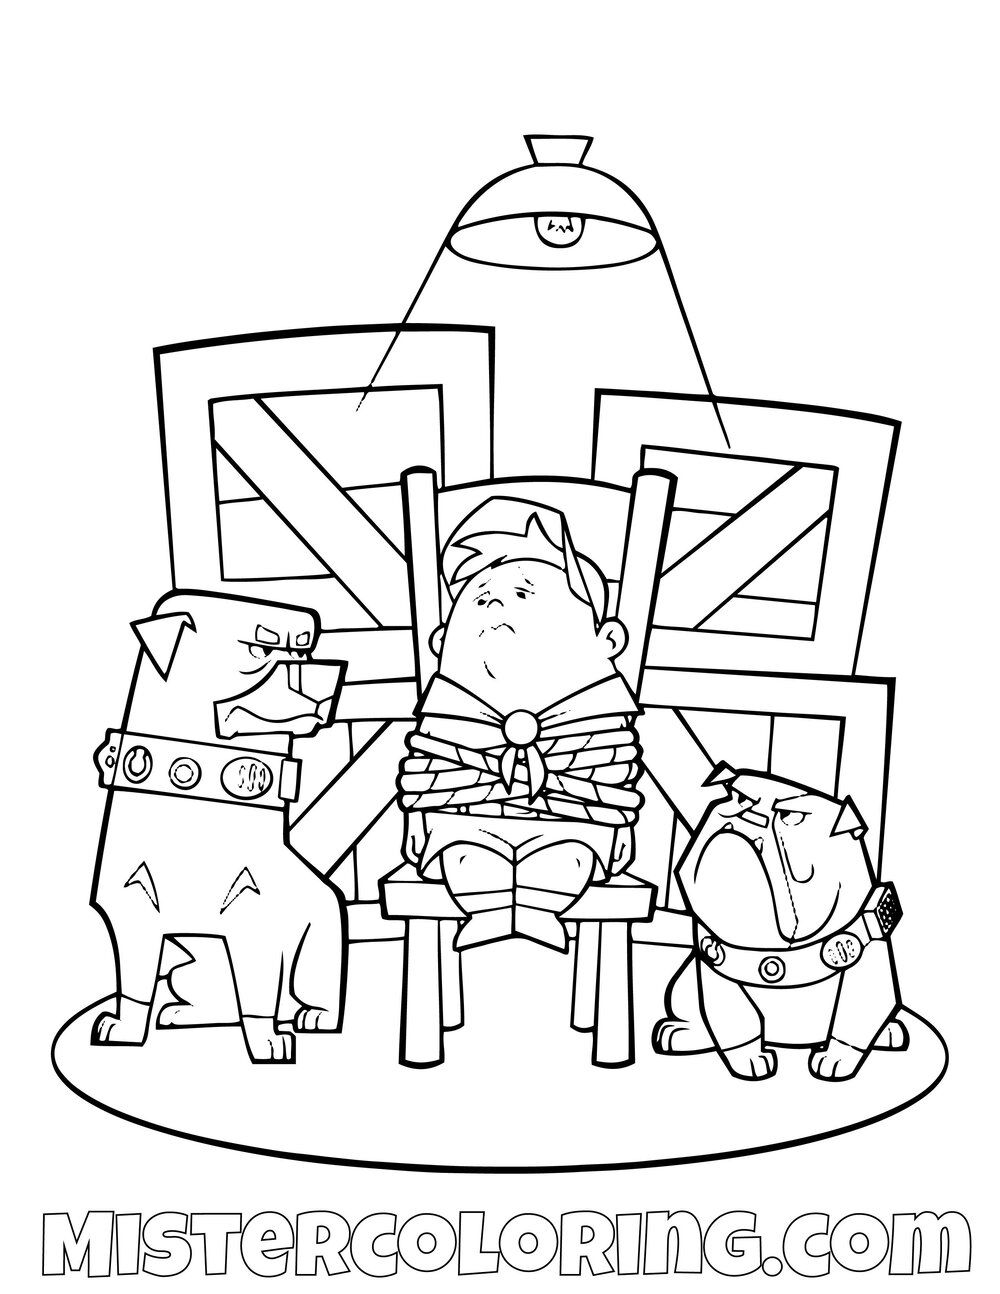 Russell Arrested Disney Pixar Up Movie Coloring Pages For Kids Dog Coloring Book Coloring Pages For Kids Coloring Pages